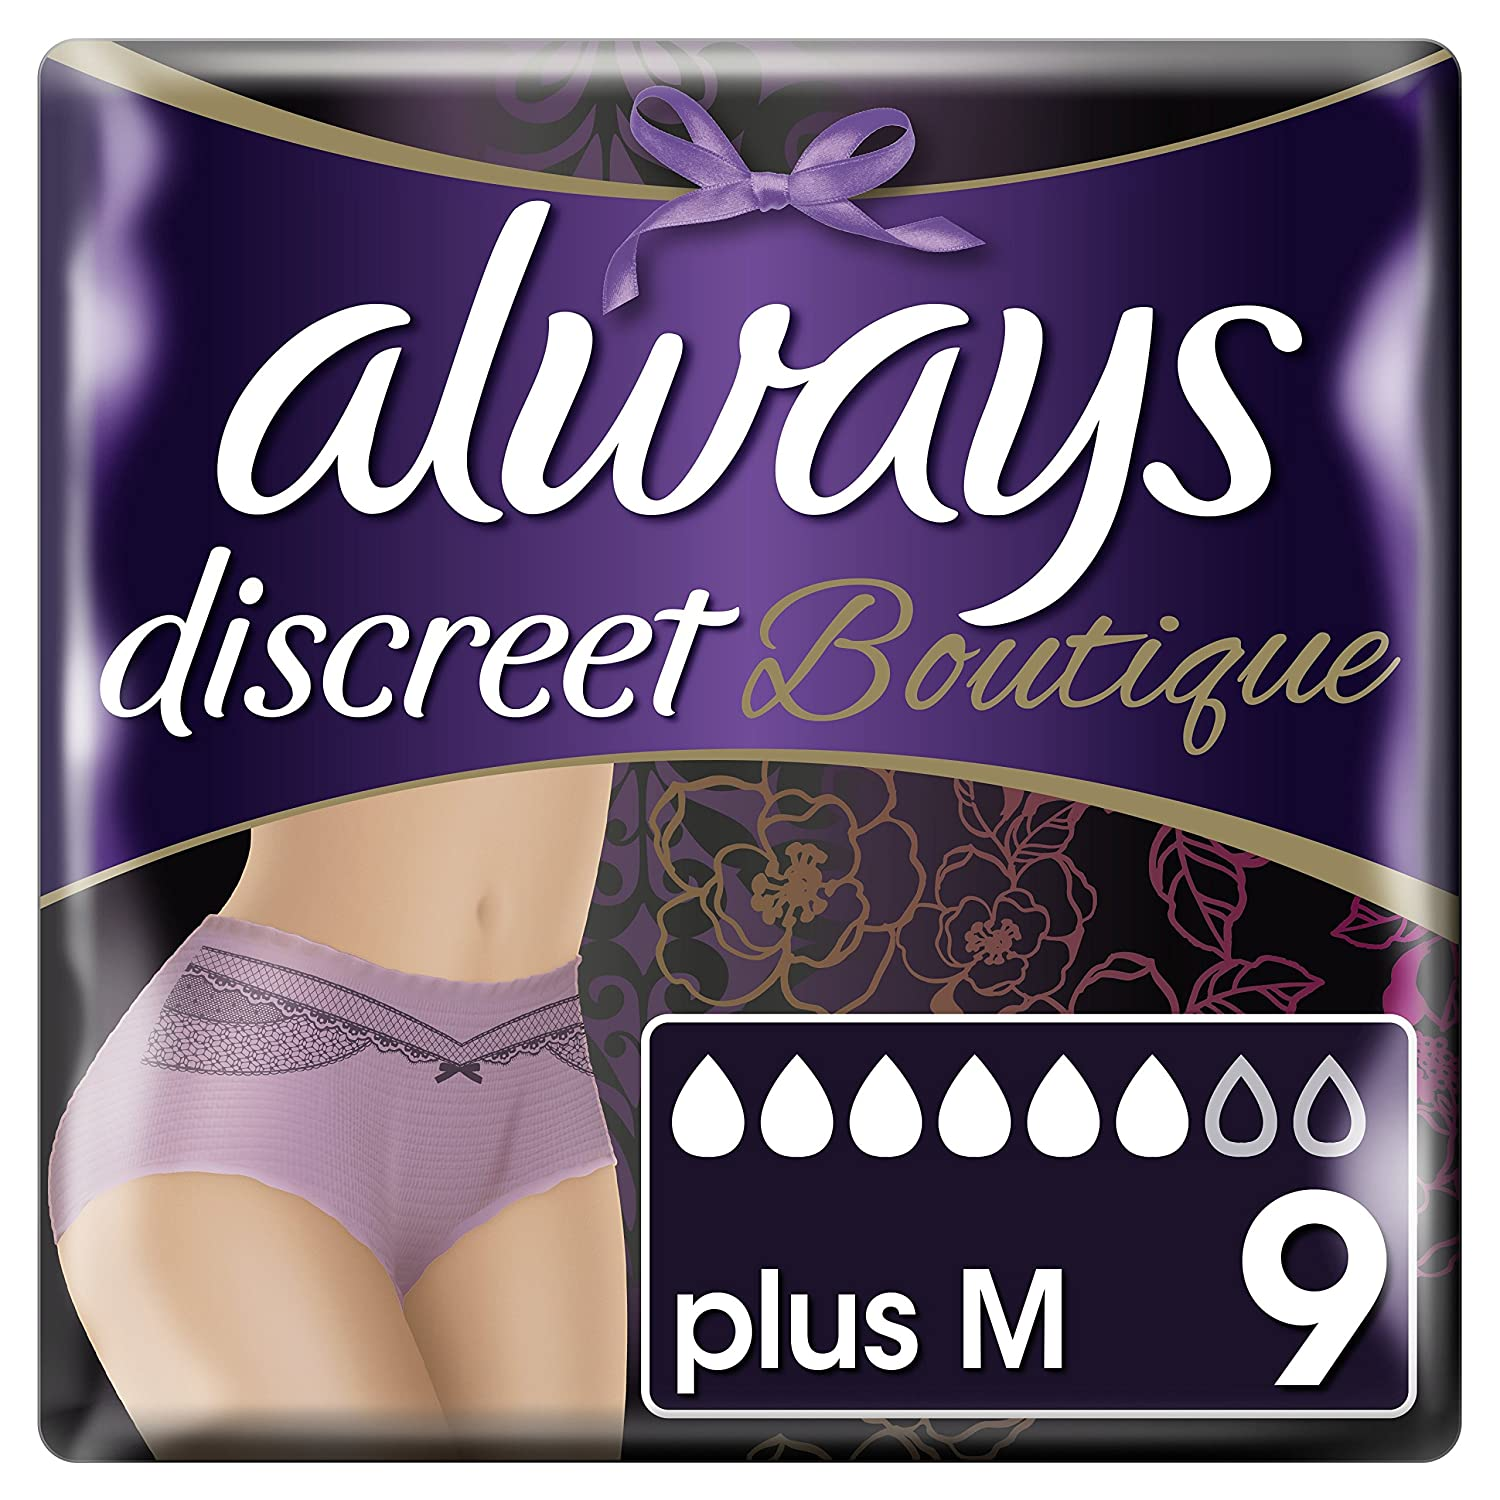 Always Discreet Boutique, Incontinence Pants size M, for Women with sensitive bladder, Peach color, 6 drops absorbency - Super saving box - 2 Packs of 9 count (Total 18 count) Procter & Gamble 83735046